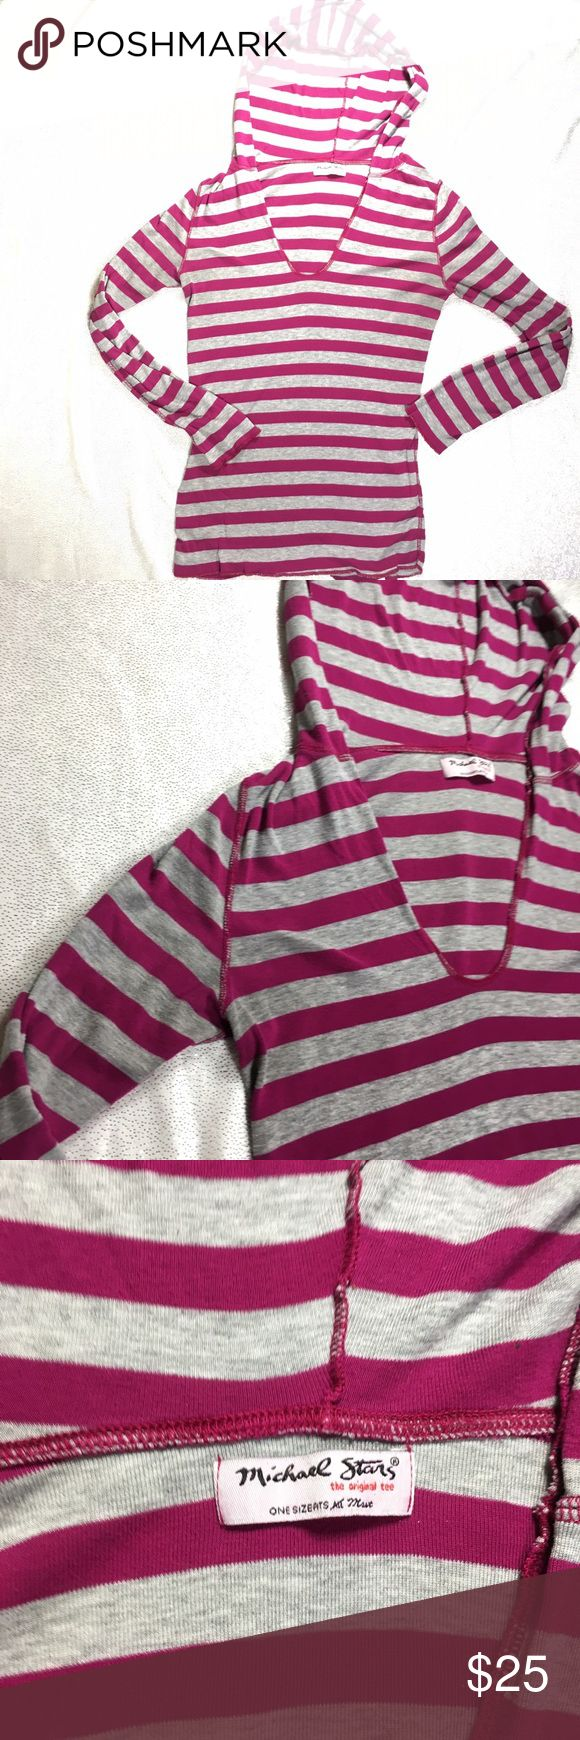 Michael Stars Hooded Long Sleeve Striped Tee Michael Stars, sold at anthro sometimes-not sure if this piece was, Striped Long Sleeve V Neck Tee with hood. Michael does this thing I'm not a fan of where he likes to make his closes OS or One Size. What the heck is that? I mean, yeah-it's one size but it's going to fit all the different sizes differently. Soft, and thin (but not sheer) this works well with jeans and hanging, or white pants/ white frayed jeans and going for a beach look. Michael…